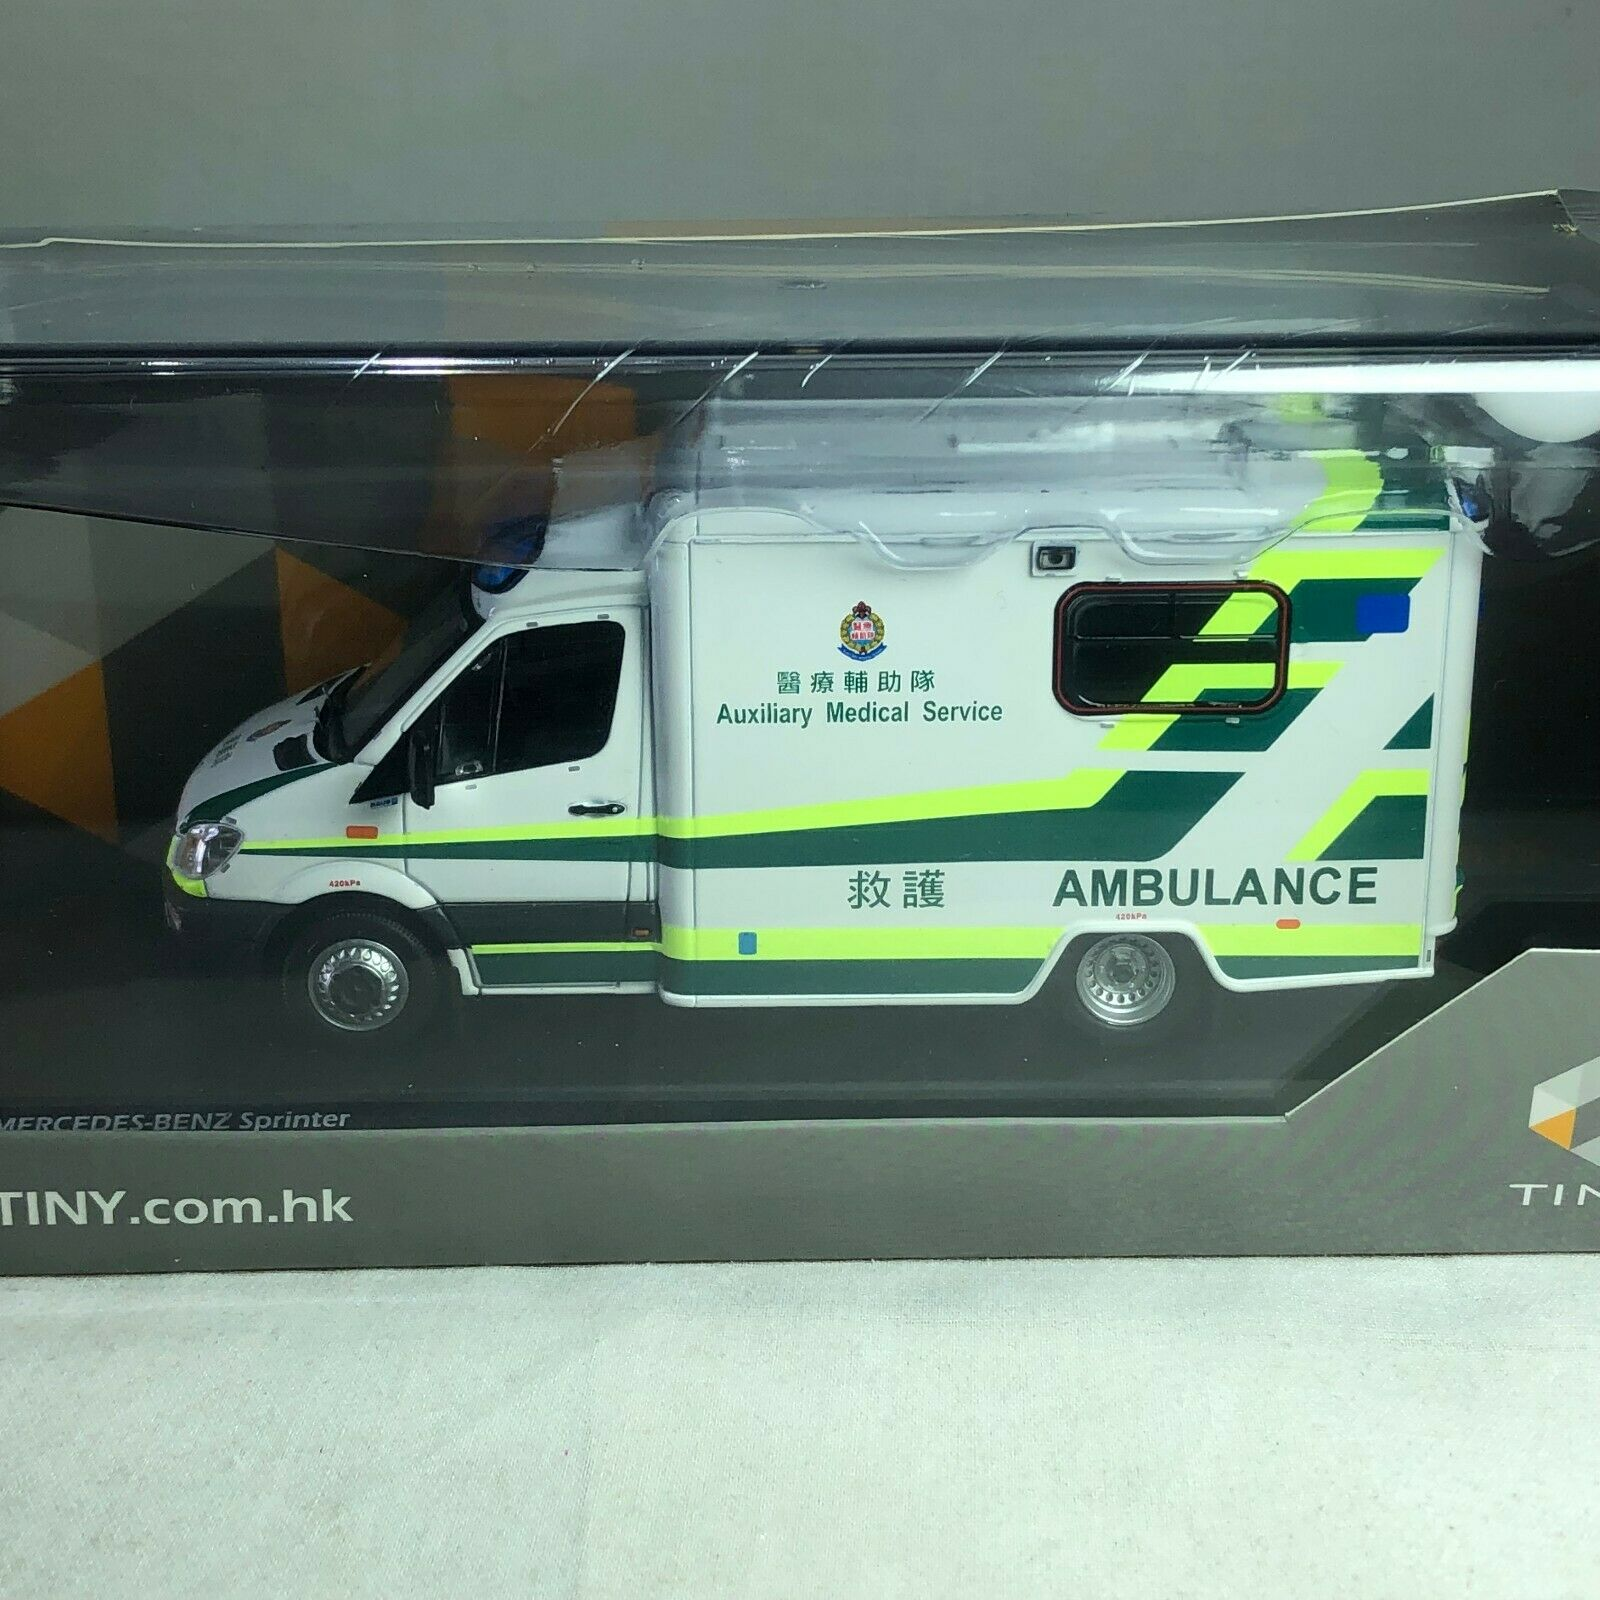 1 43 minuscules MERCEDES-BENZ SPRINTER Hong Kong AMS ambulance ATC43112